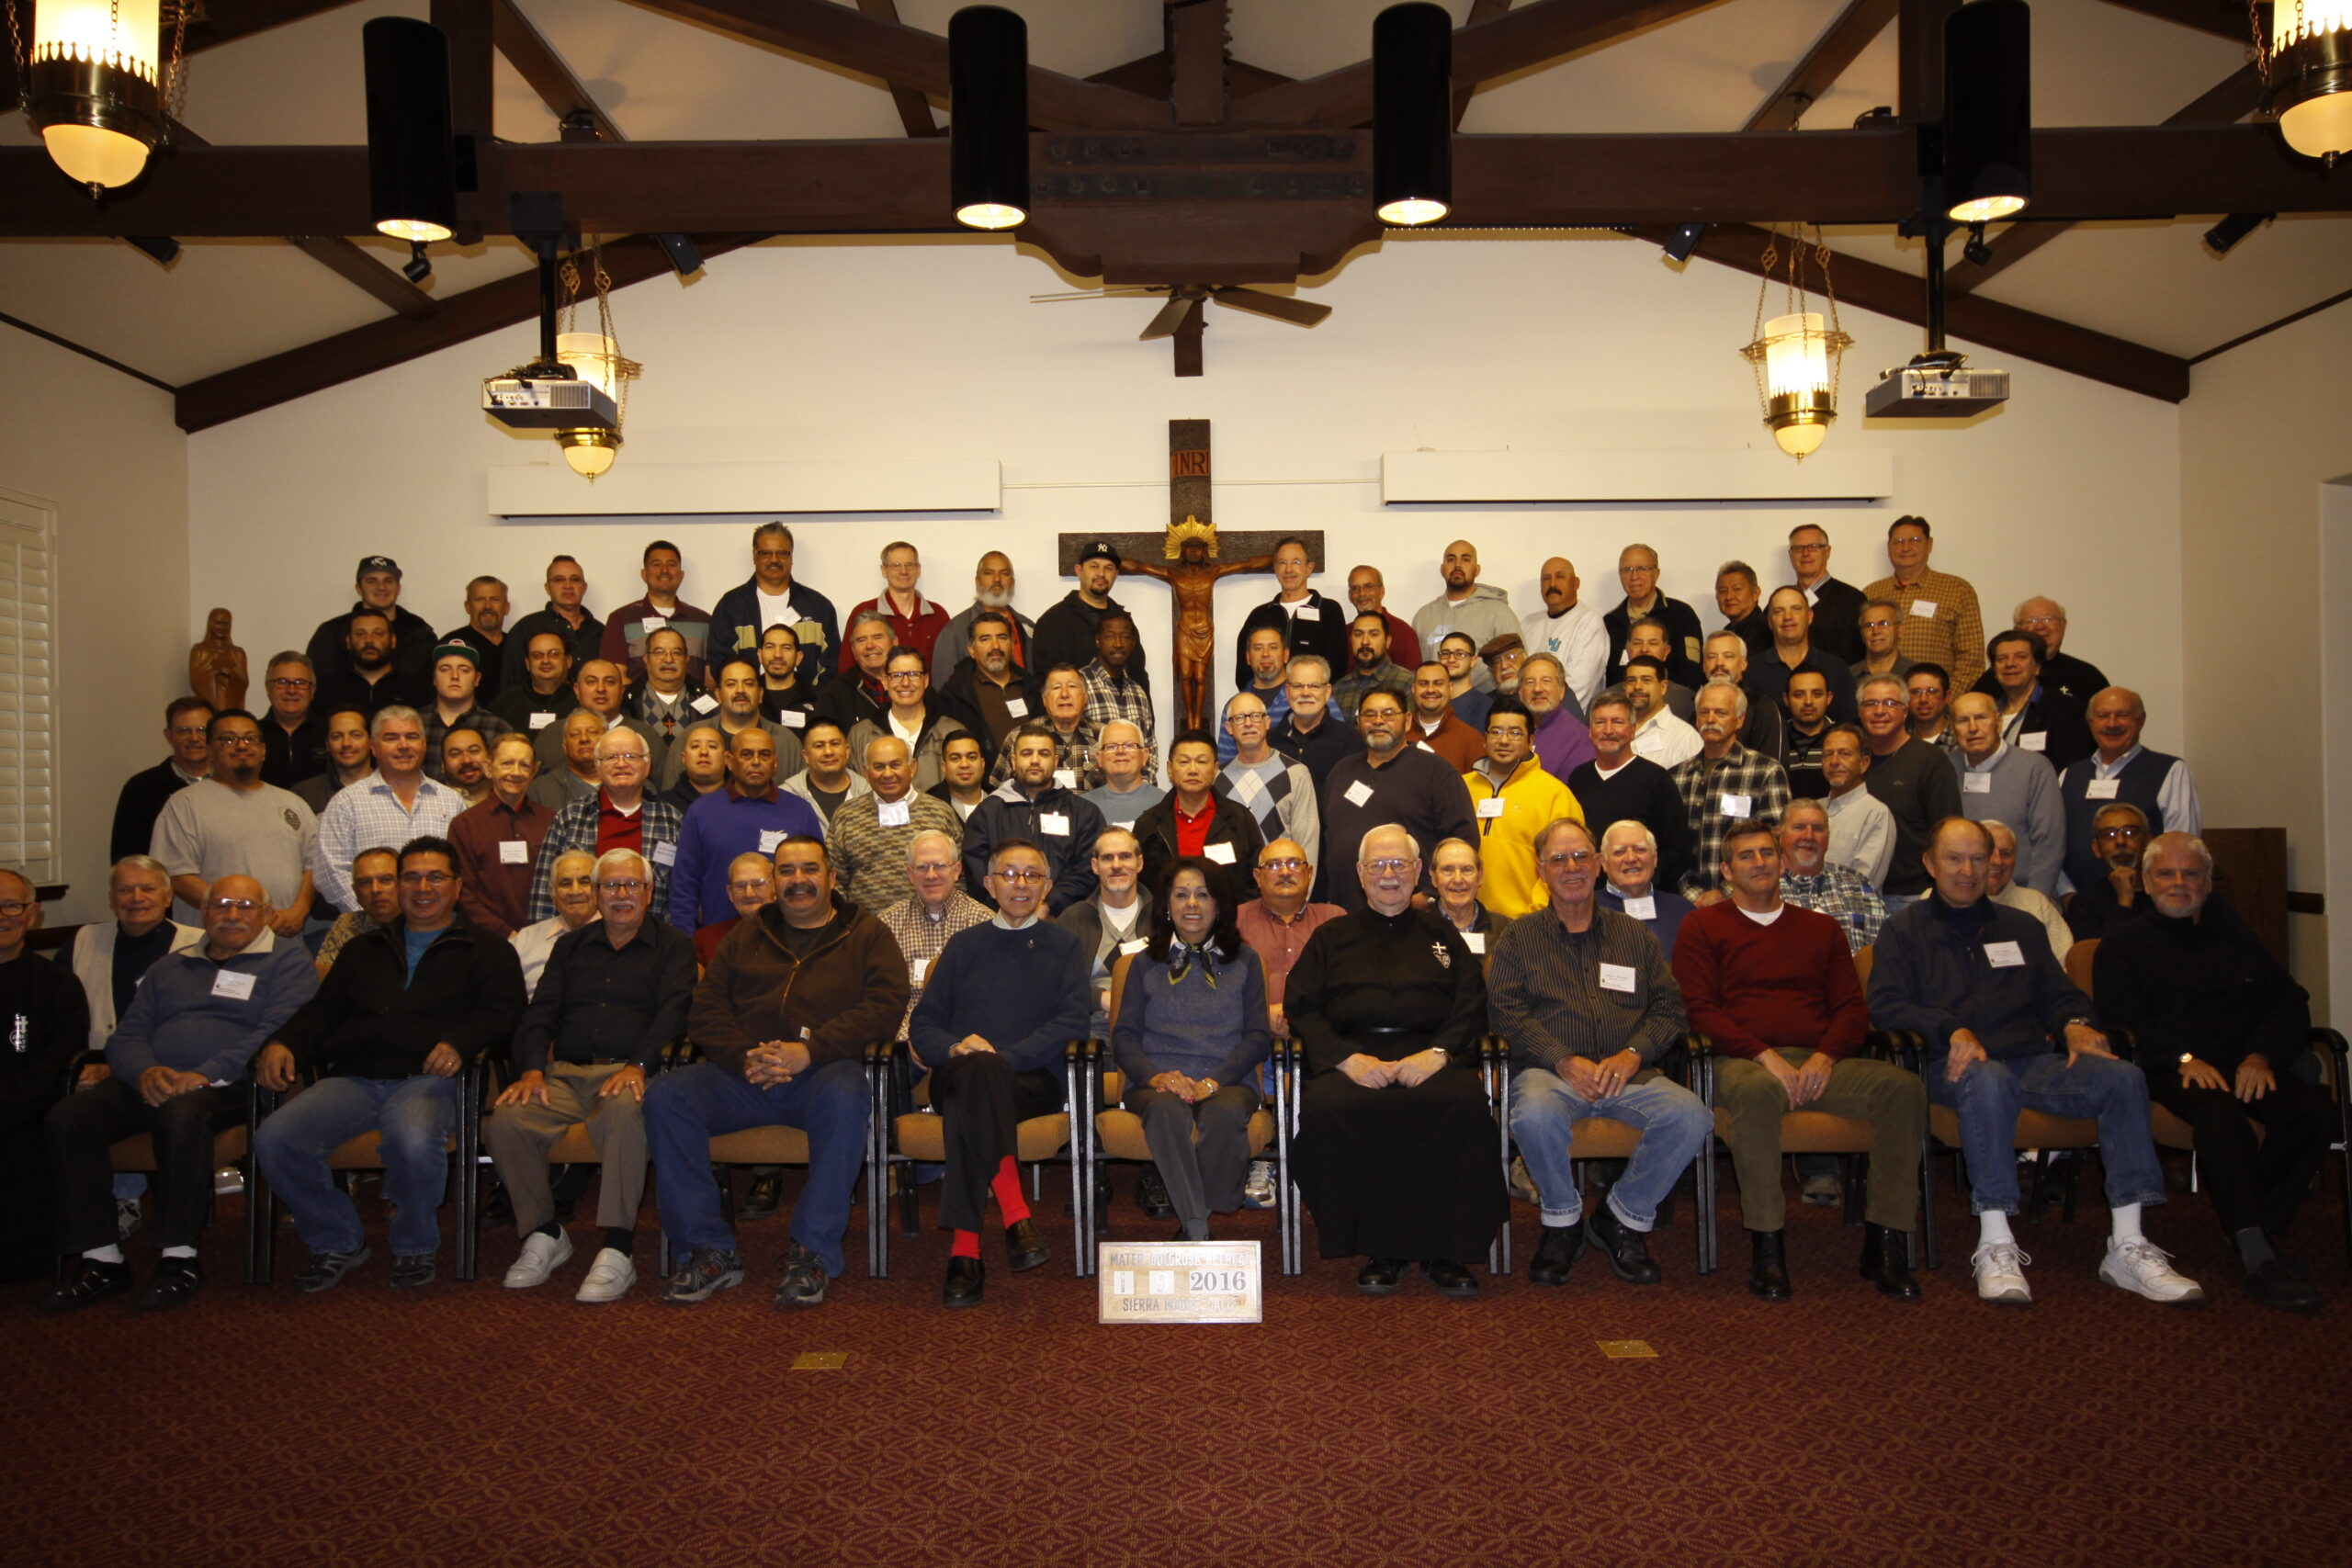 Men's Retreat Weekend, January 8-10, 2016